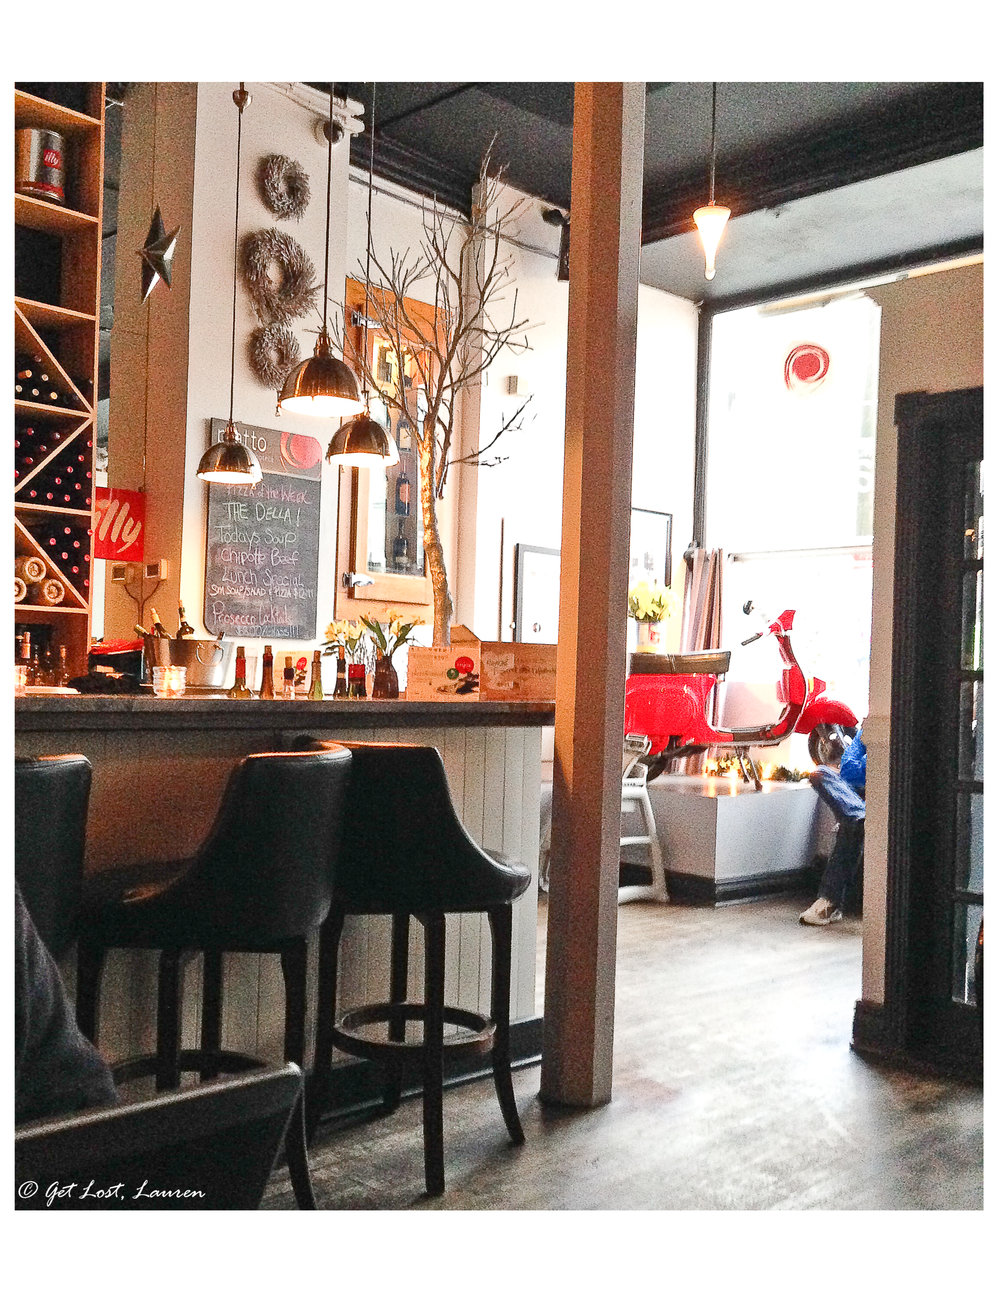 Piatto's charming dining room.